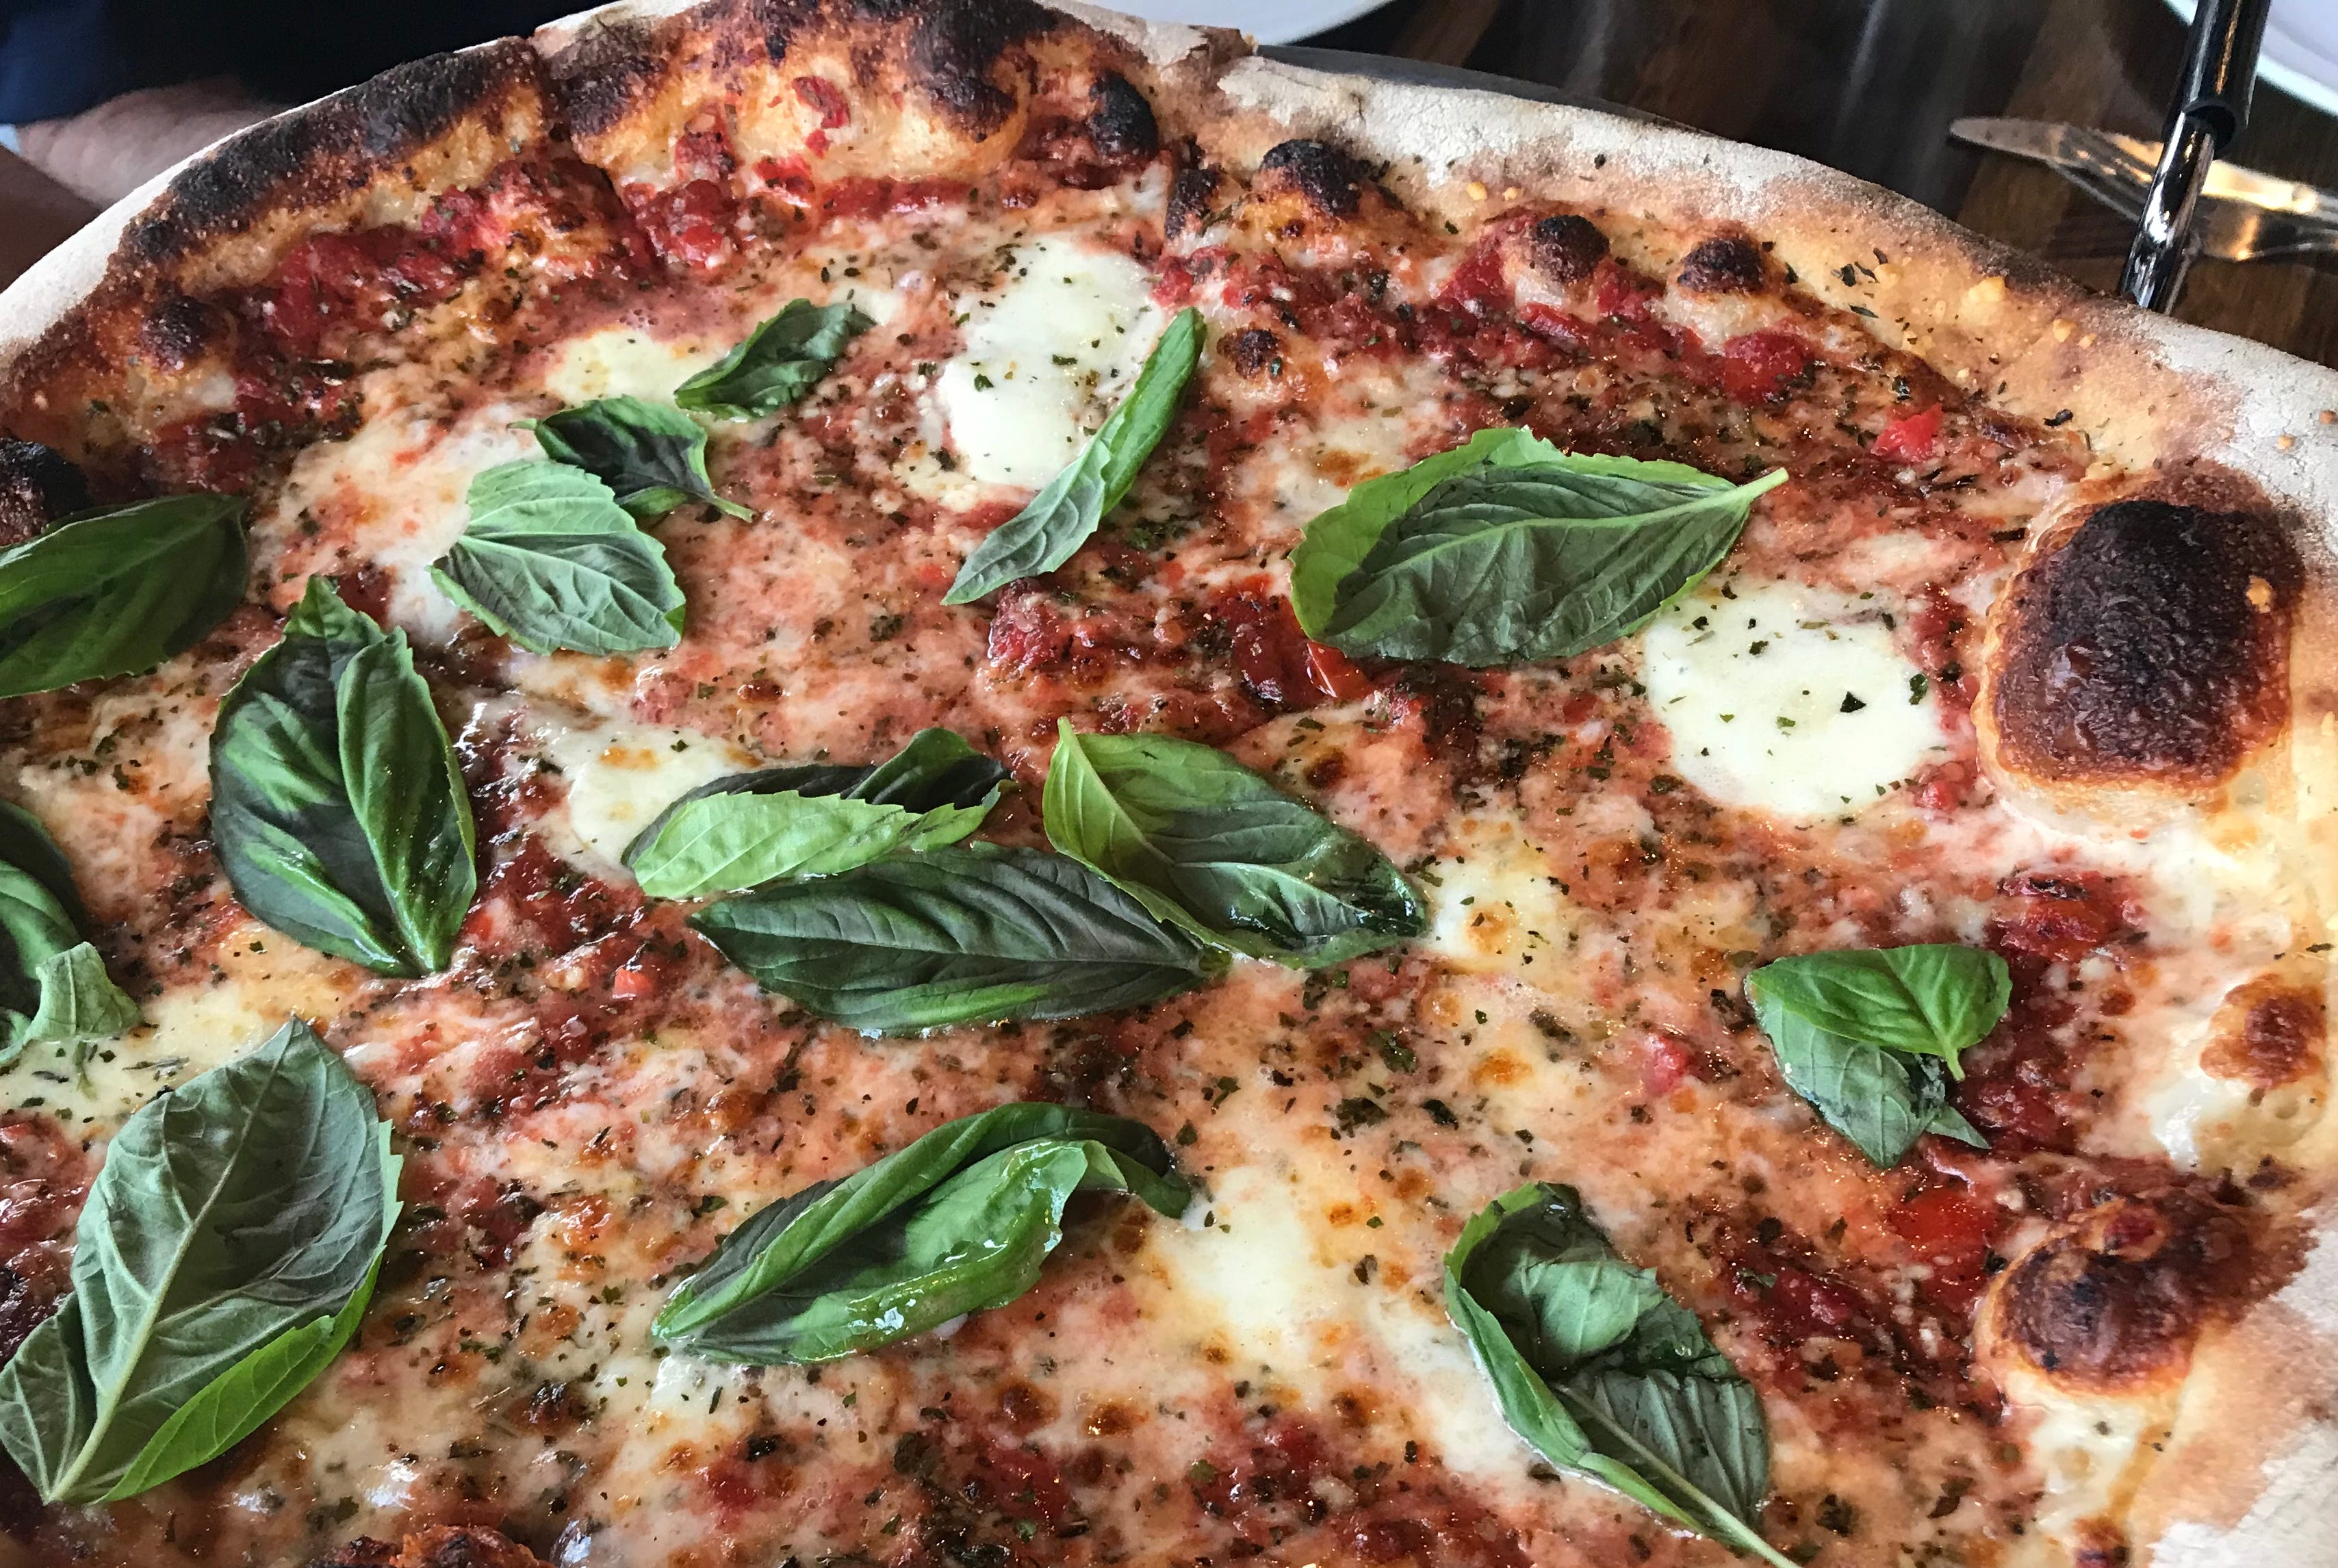 The slow-rise dough develops bubbles in the crust when it's fired in a very hot oven at Wy'east Pizza, 5601 W. Vliet St. This is the Margherita, with fresh mozzarella and basil leaves.